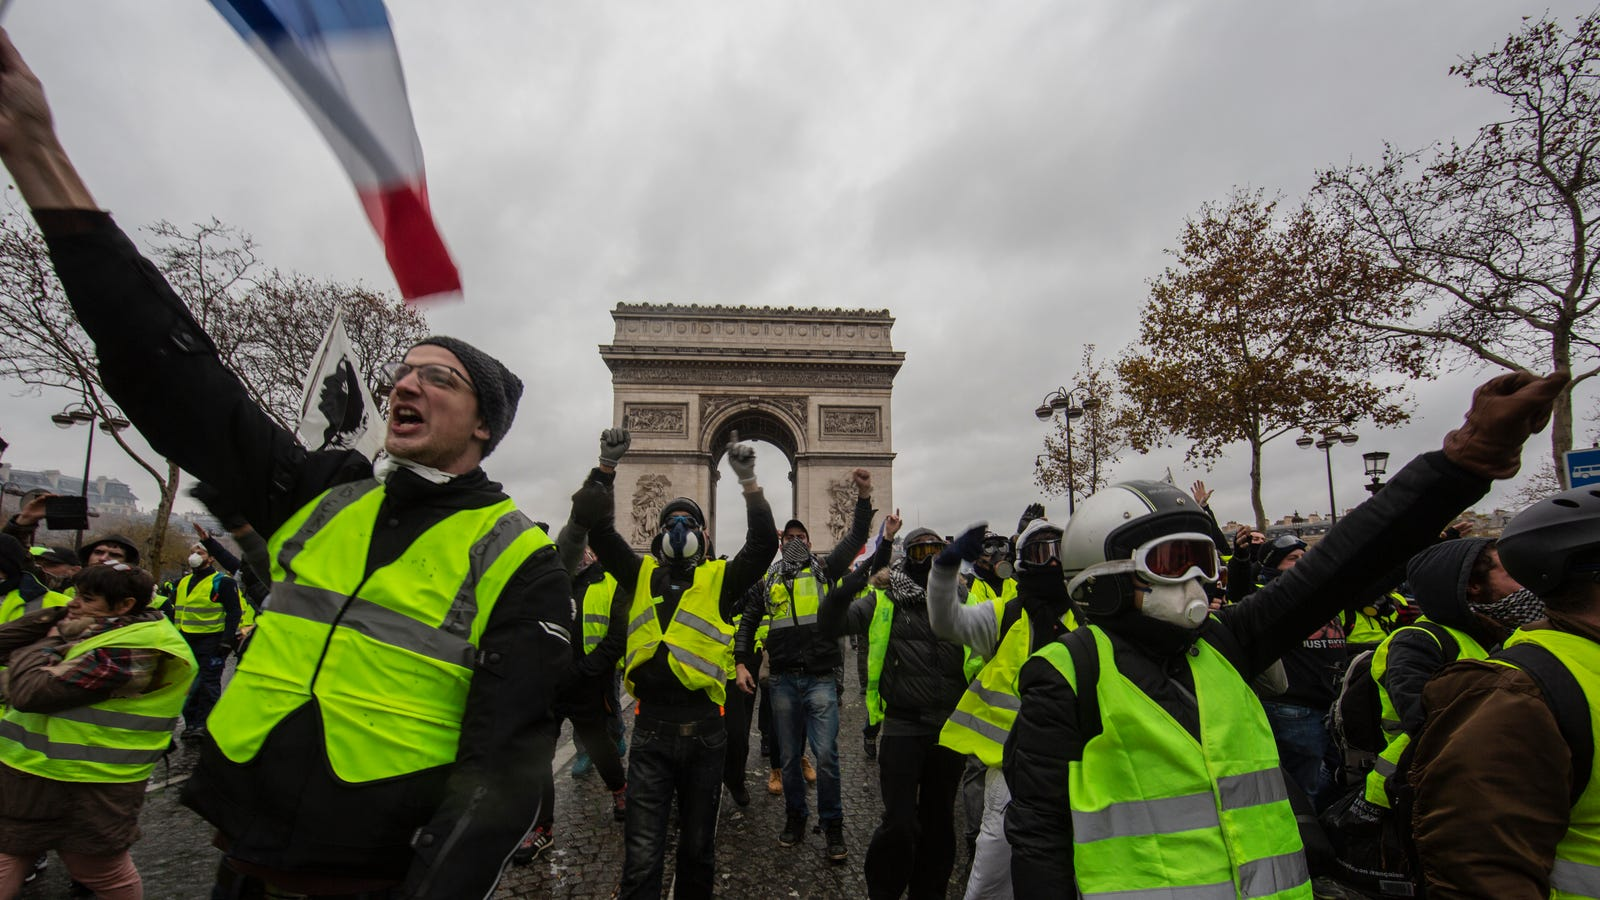 France's Gas Tax Disaster Shows We Can't Save Earth by Screwing Over Poor People